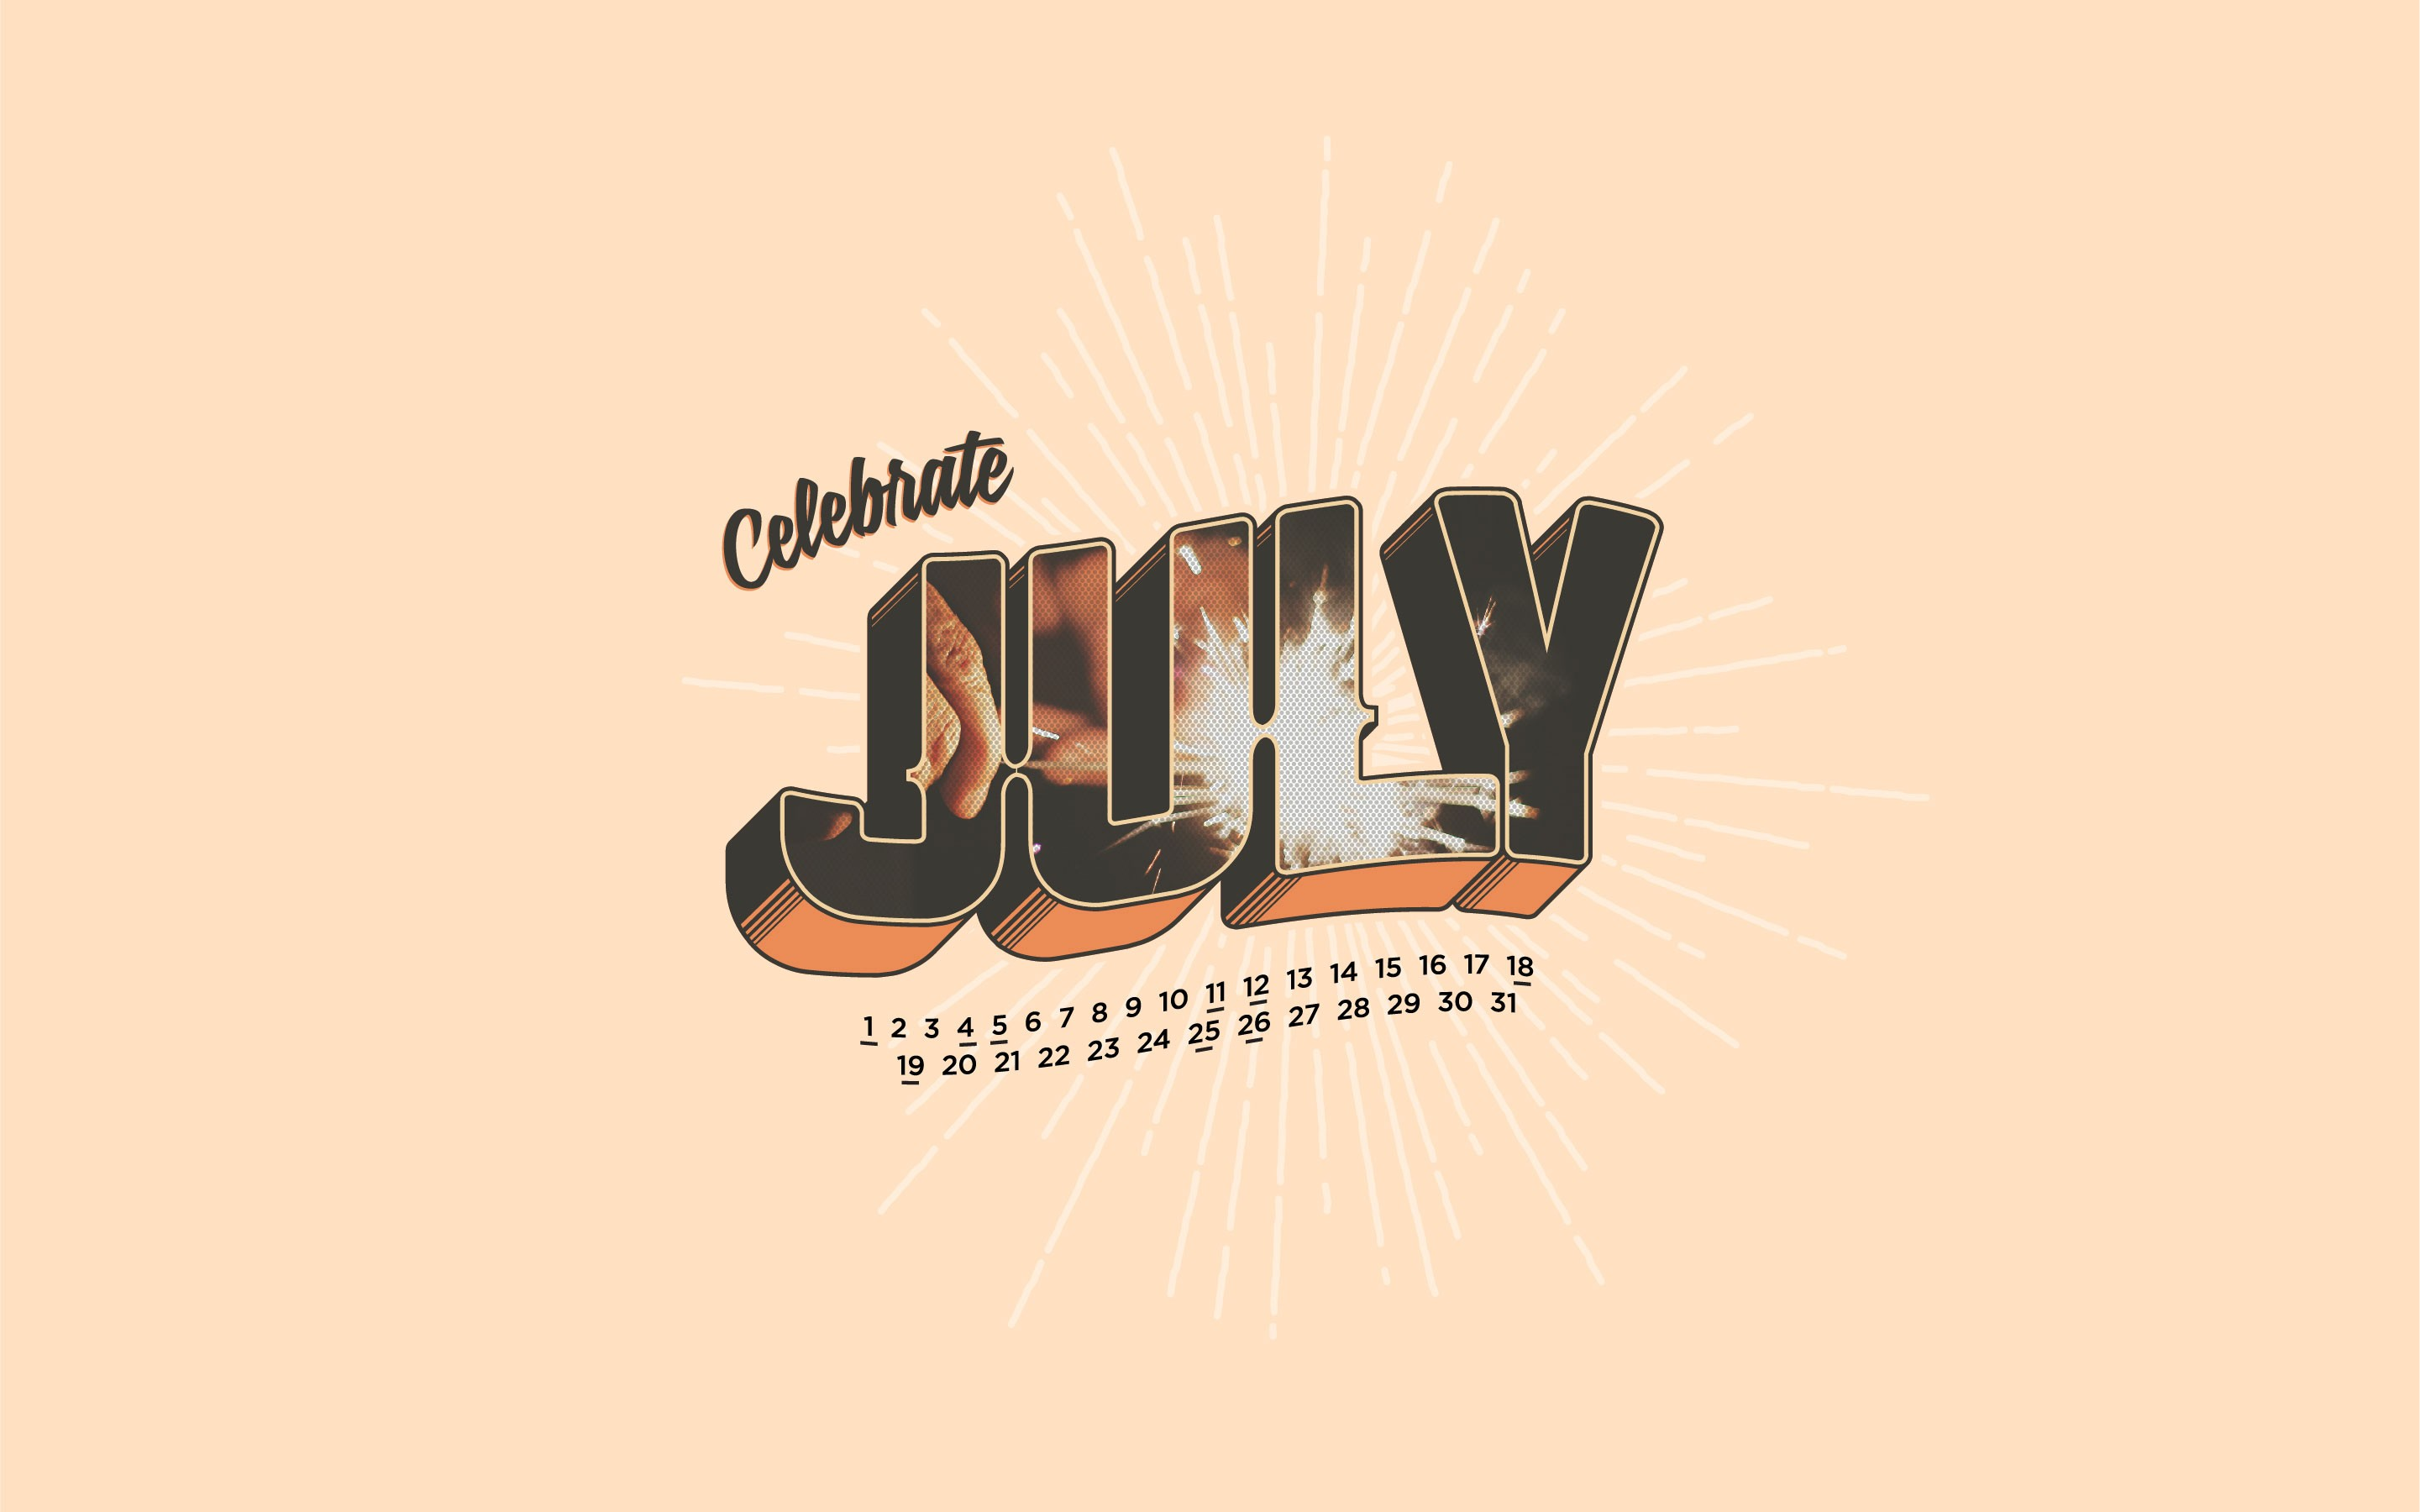 Celebrate July Wallpaper